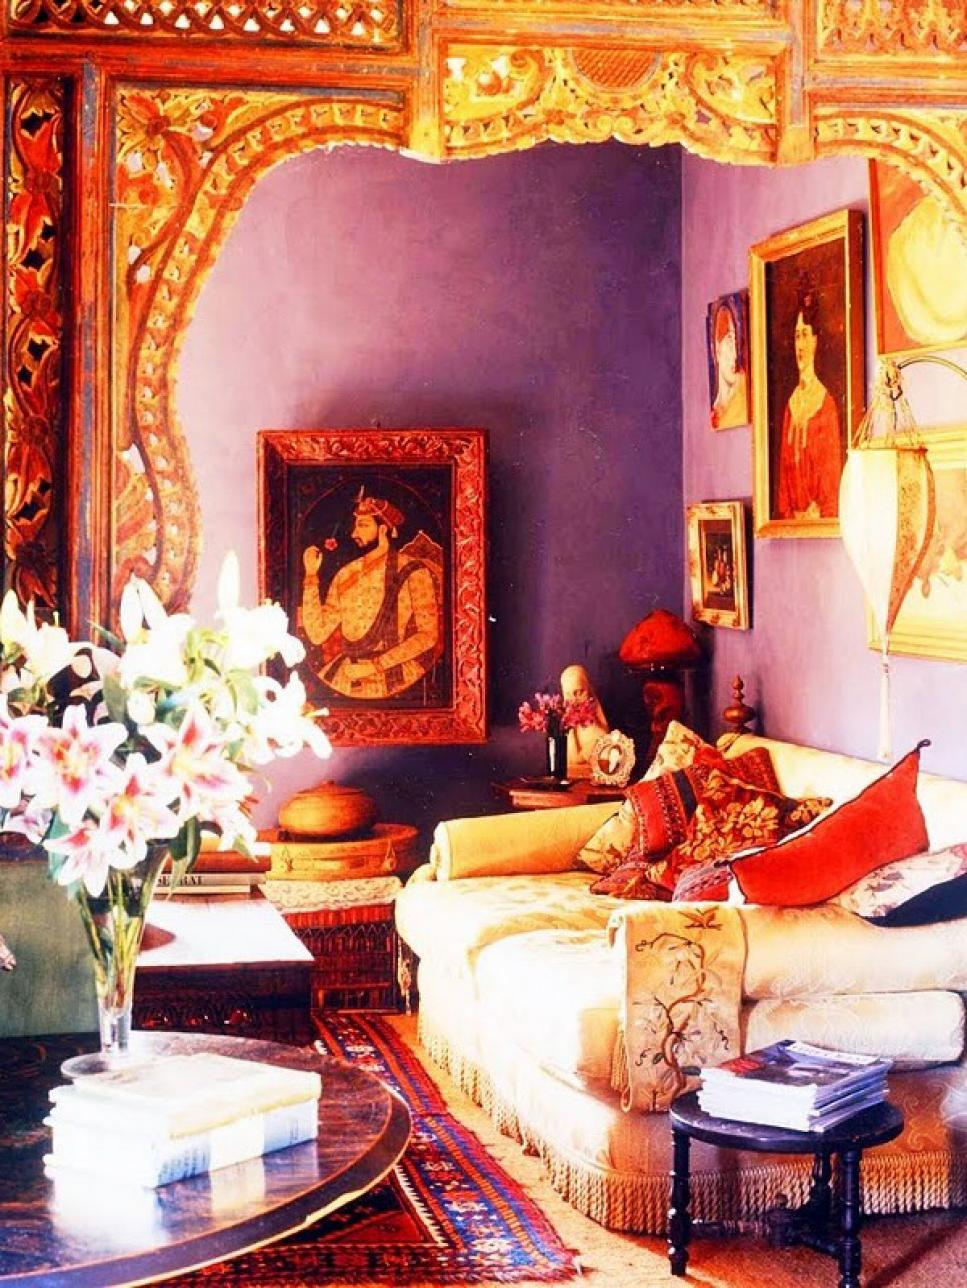 indian bedroom decor 12 id 233 es de d 233 coration inspir 233 es de l inde bricobistro 11886